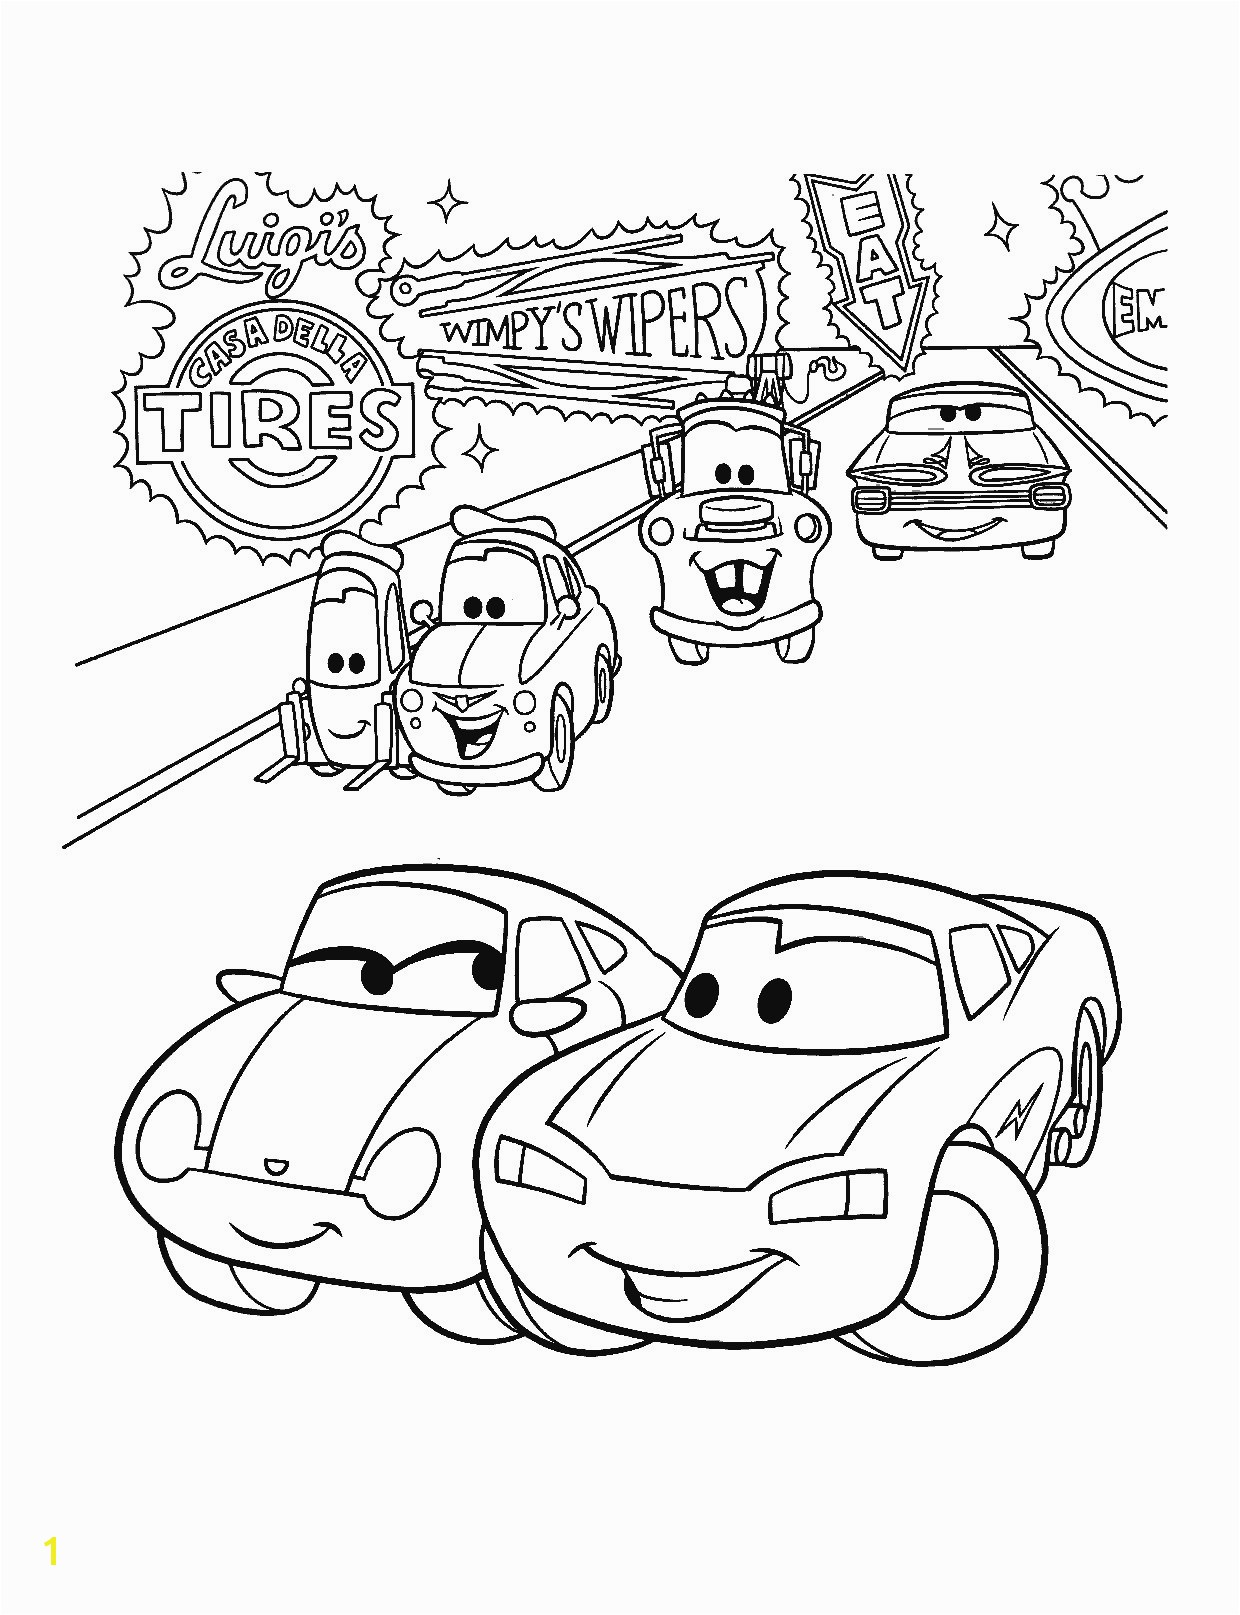 African American Coloring Pages Beautiful Unsurpassed Piston Cup Page Cars Got 6777 Stock